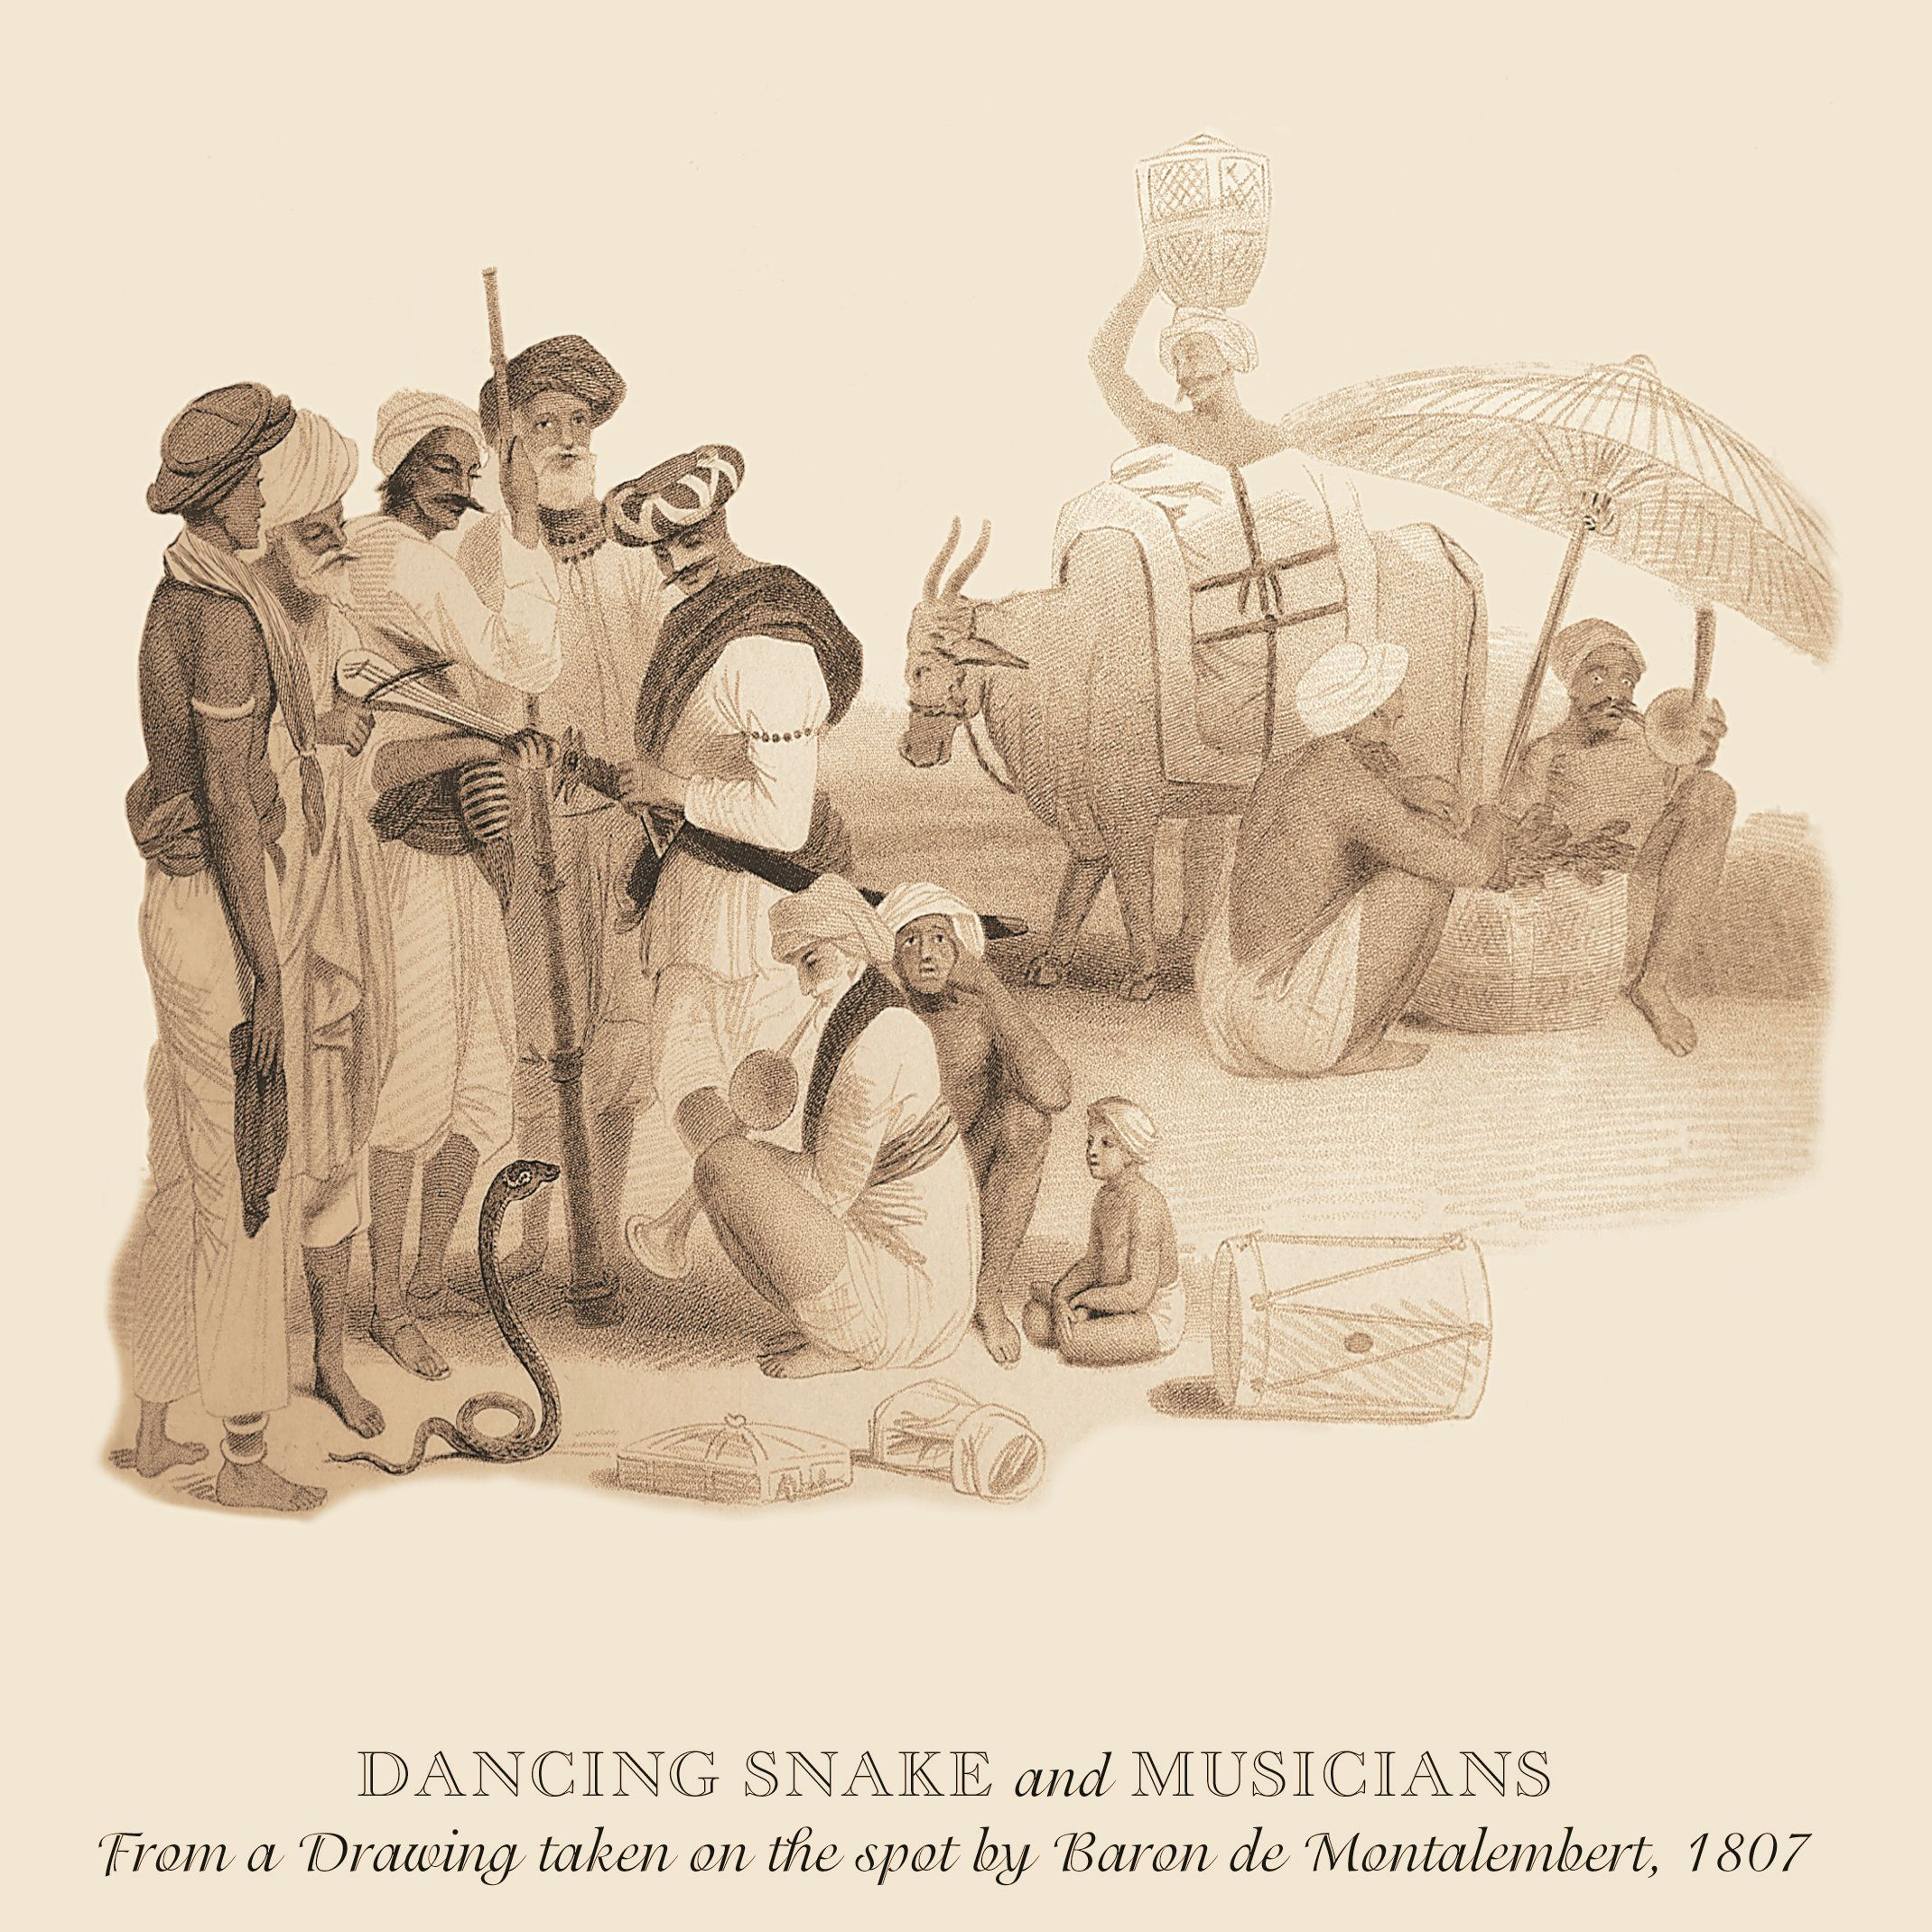 Exotic musicians and a performing snake